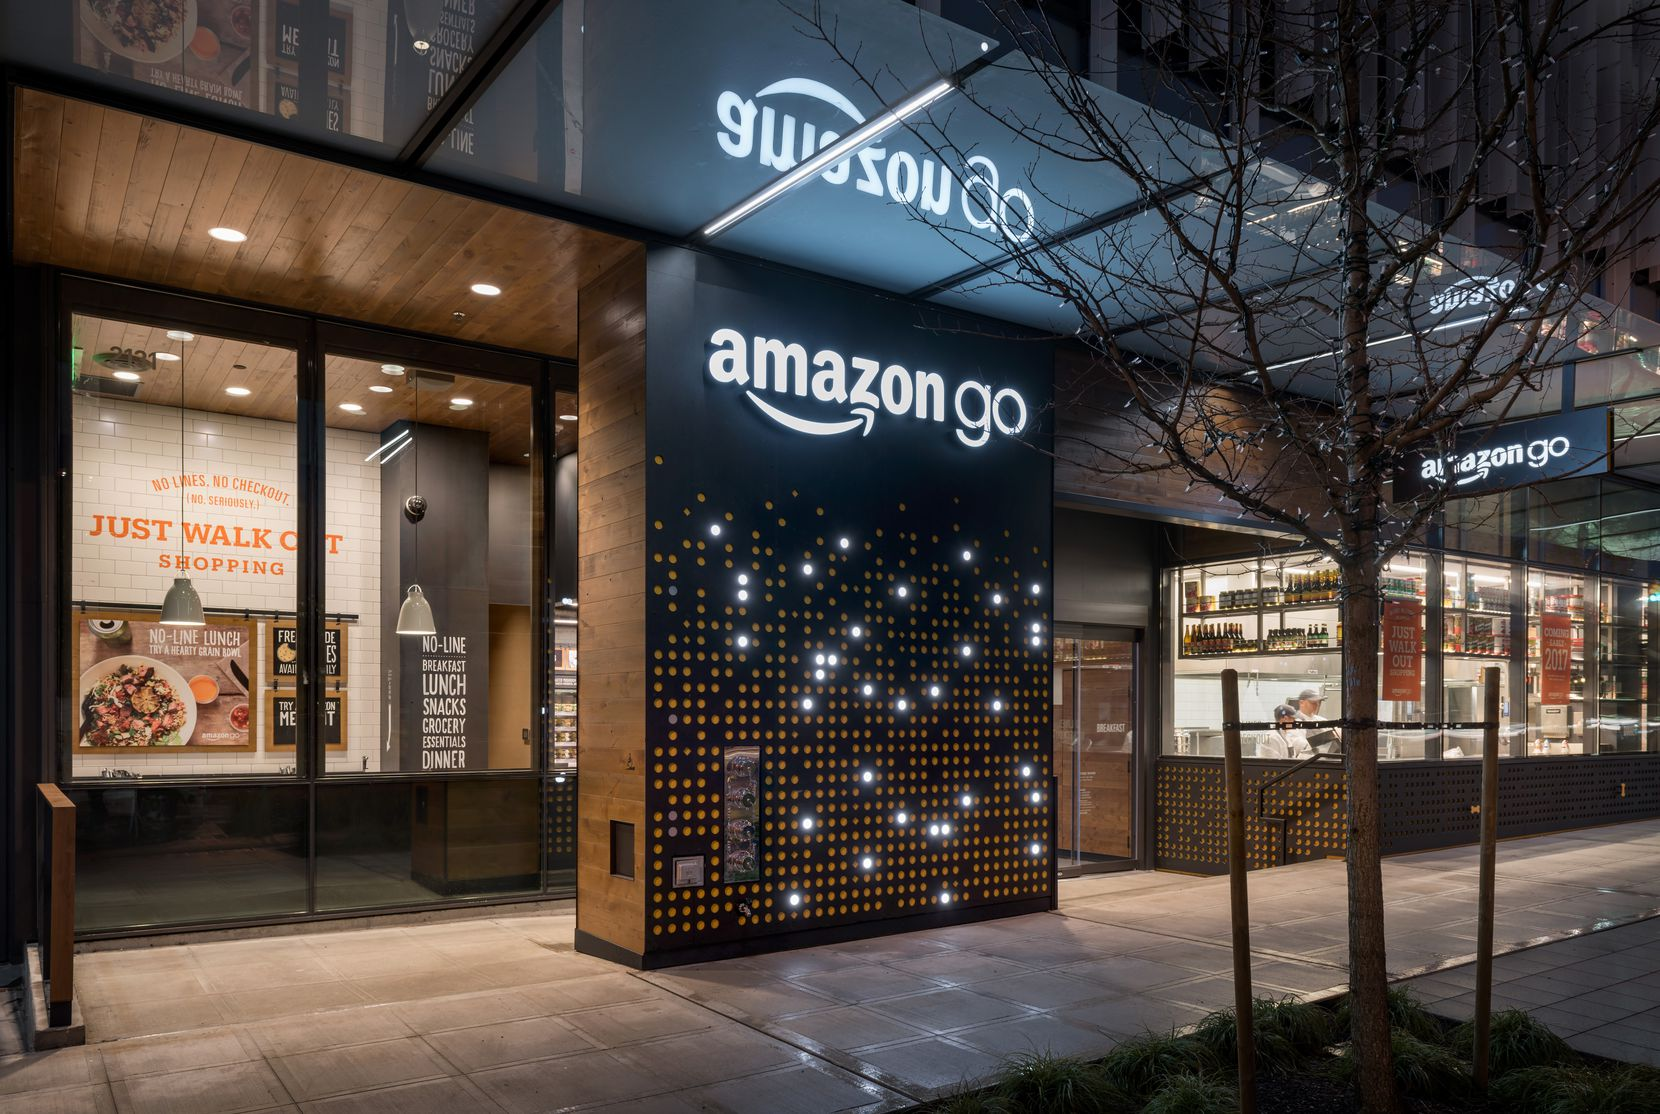 Amazon Go is a convenience store with no lines and no cashiers. This store is being tested by Amazon employees in Seattle. It won't be ready for the public until early next year. This pilot store is located at 2131 7th Avenue in Seattle.